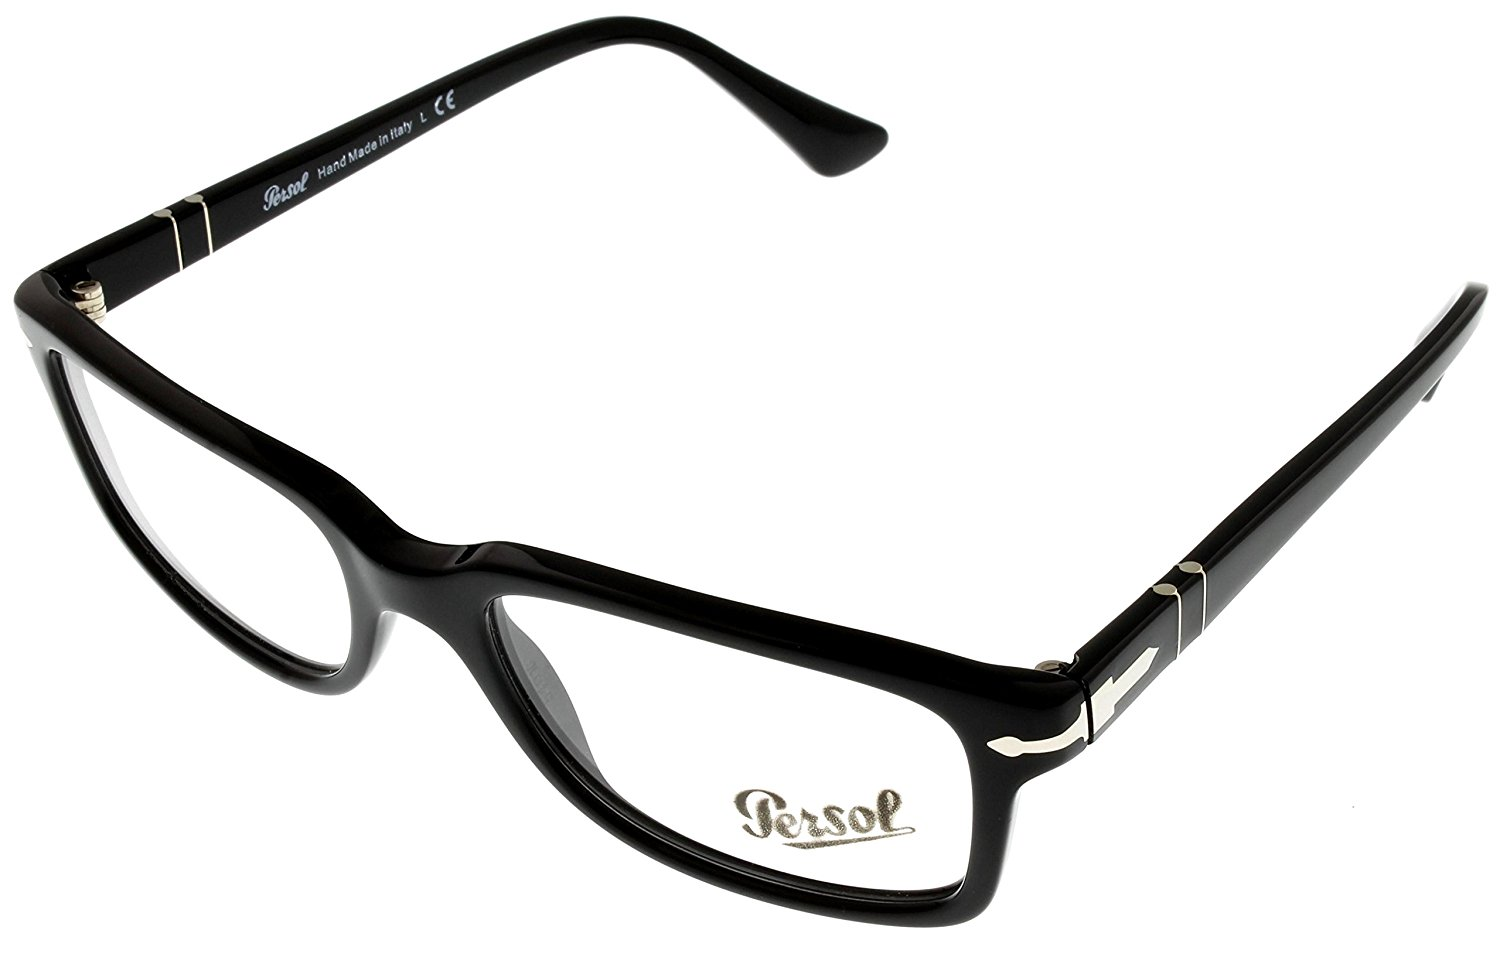 ba51d9c33d9 Get Quotations · Persol Prescription Eyeglass Frames Unisex Rectangular  Black PO3130V 95